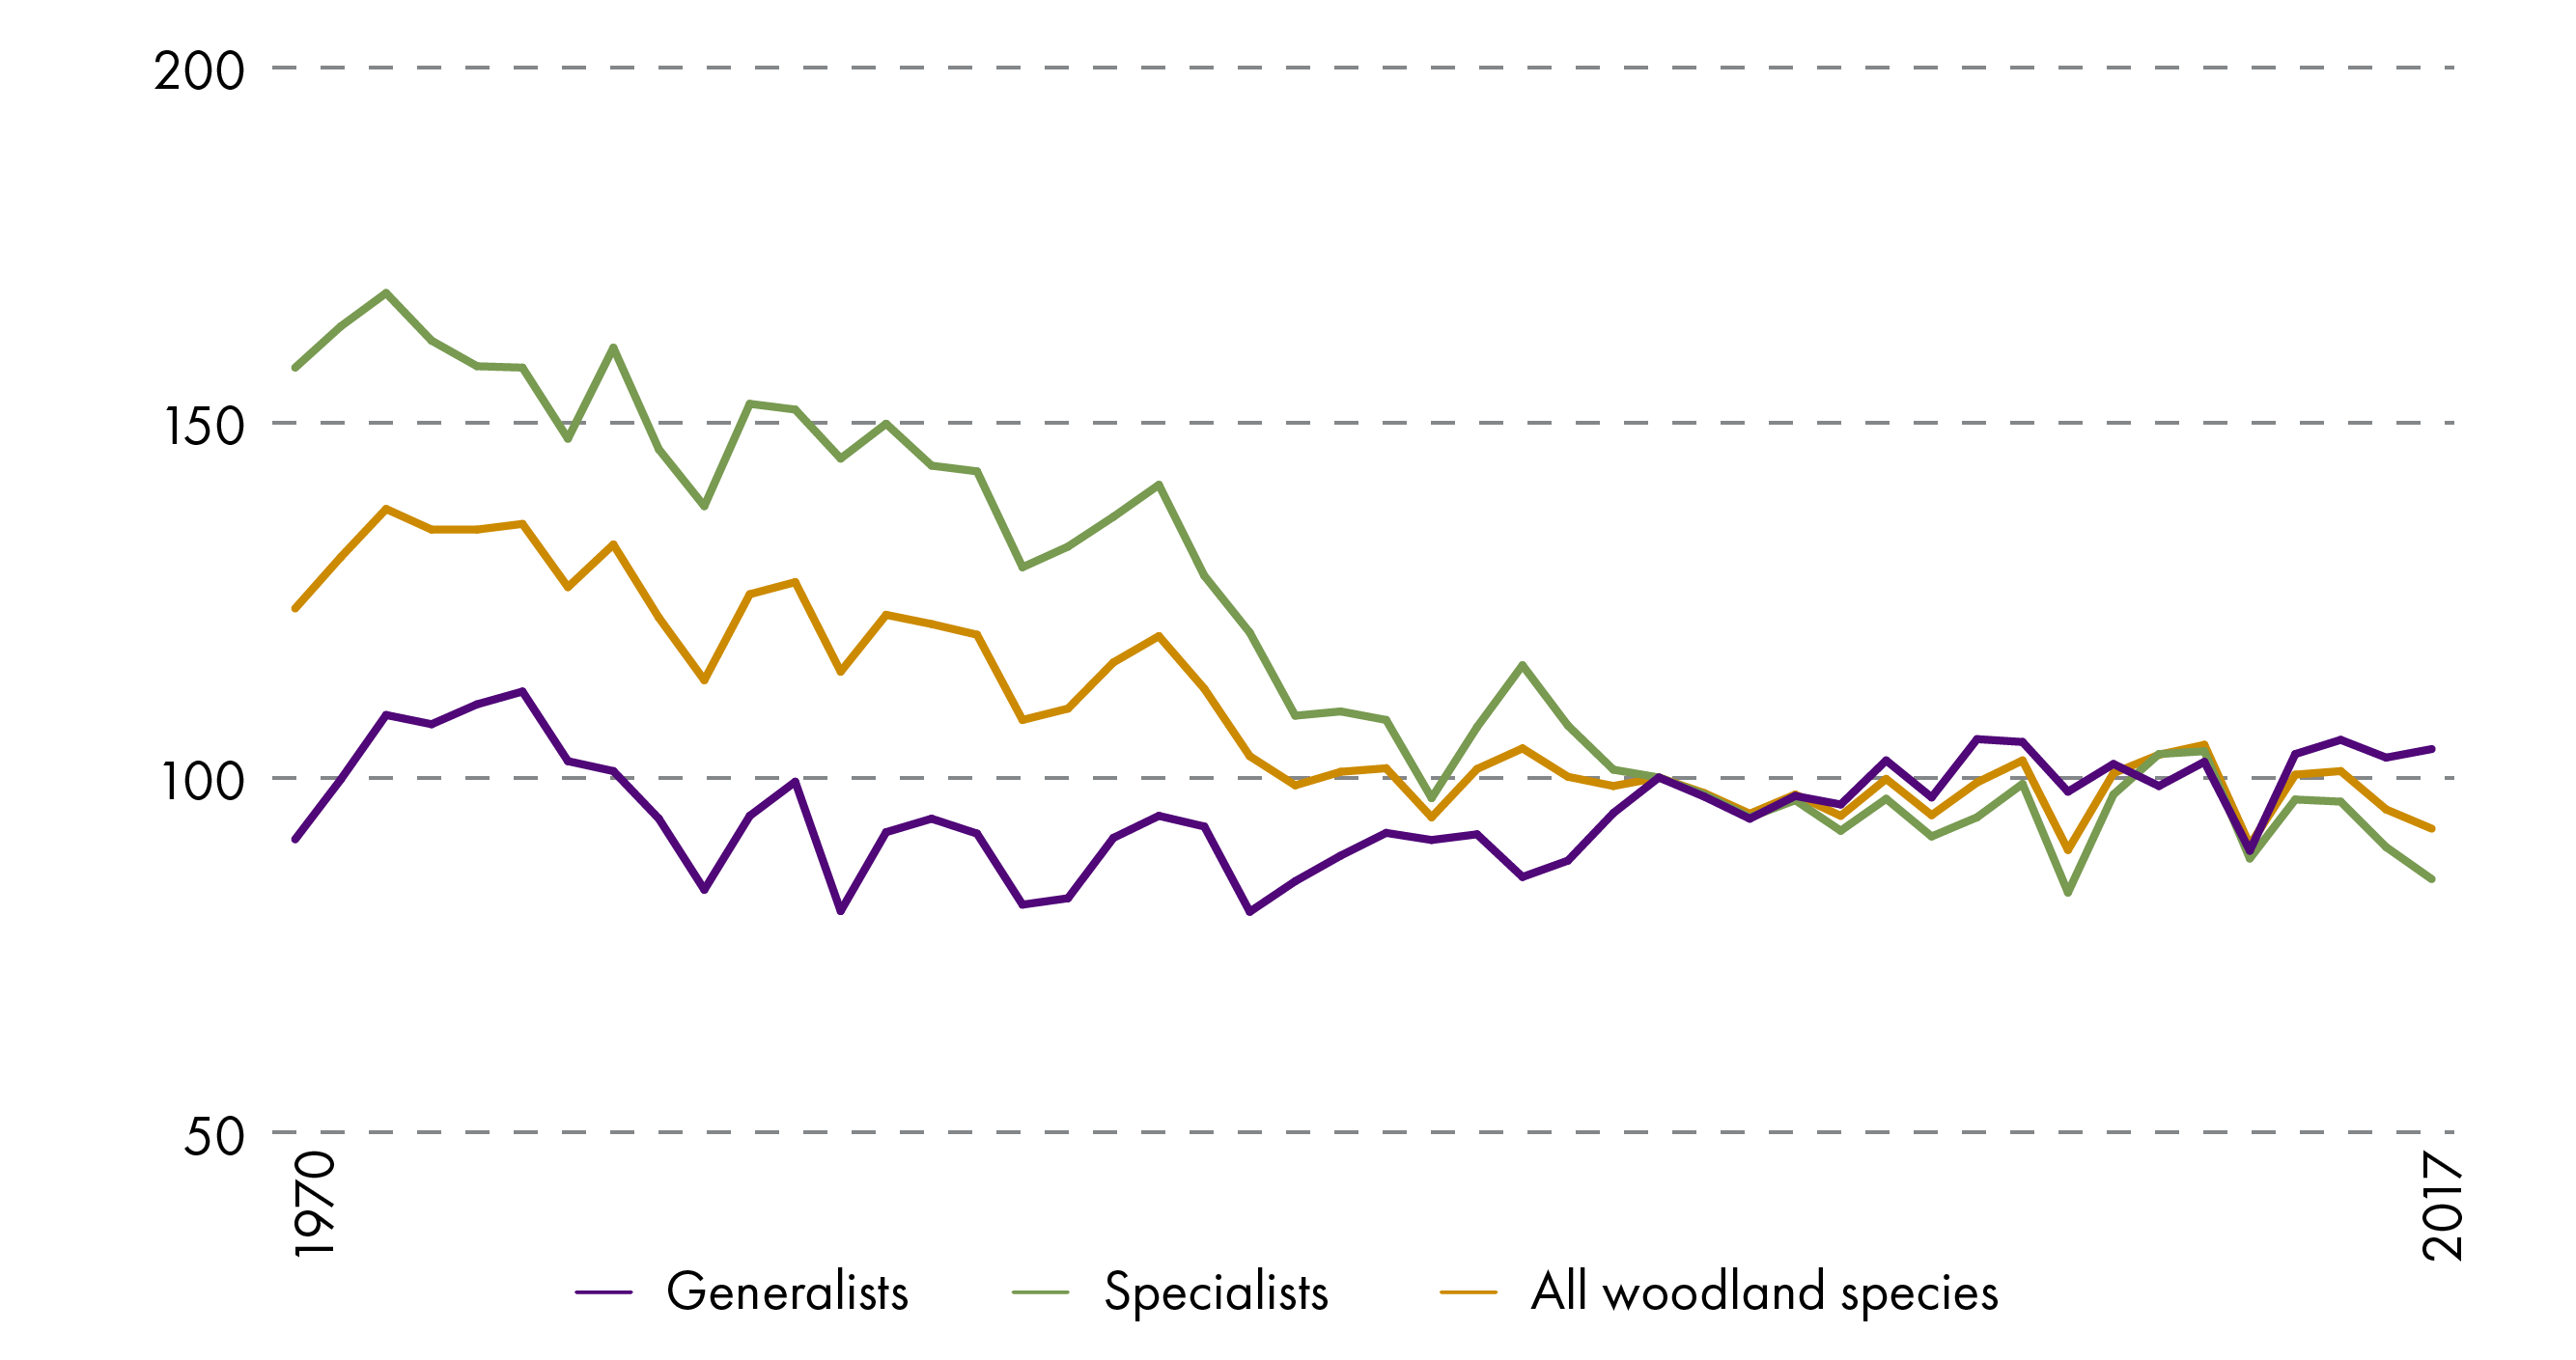 All woodland bird species have been decreasing since the 1970s